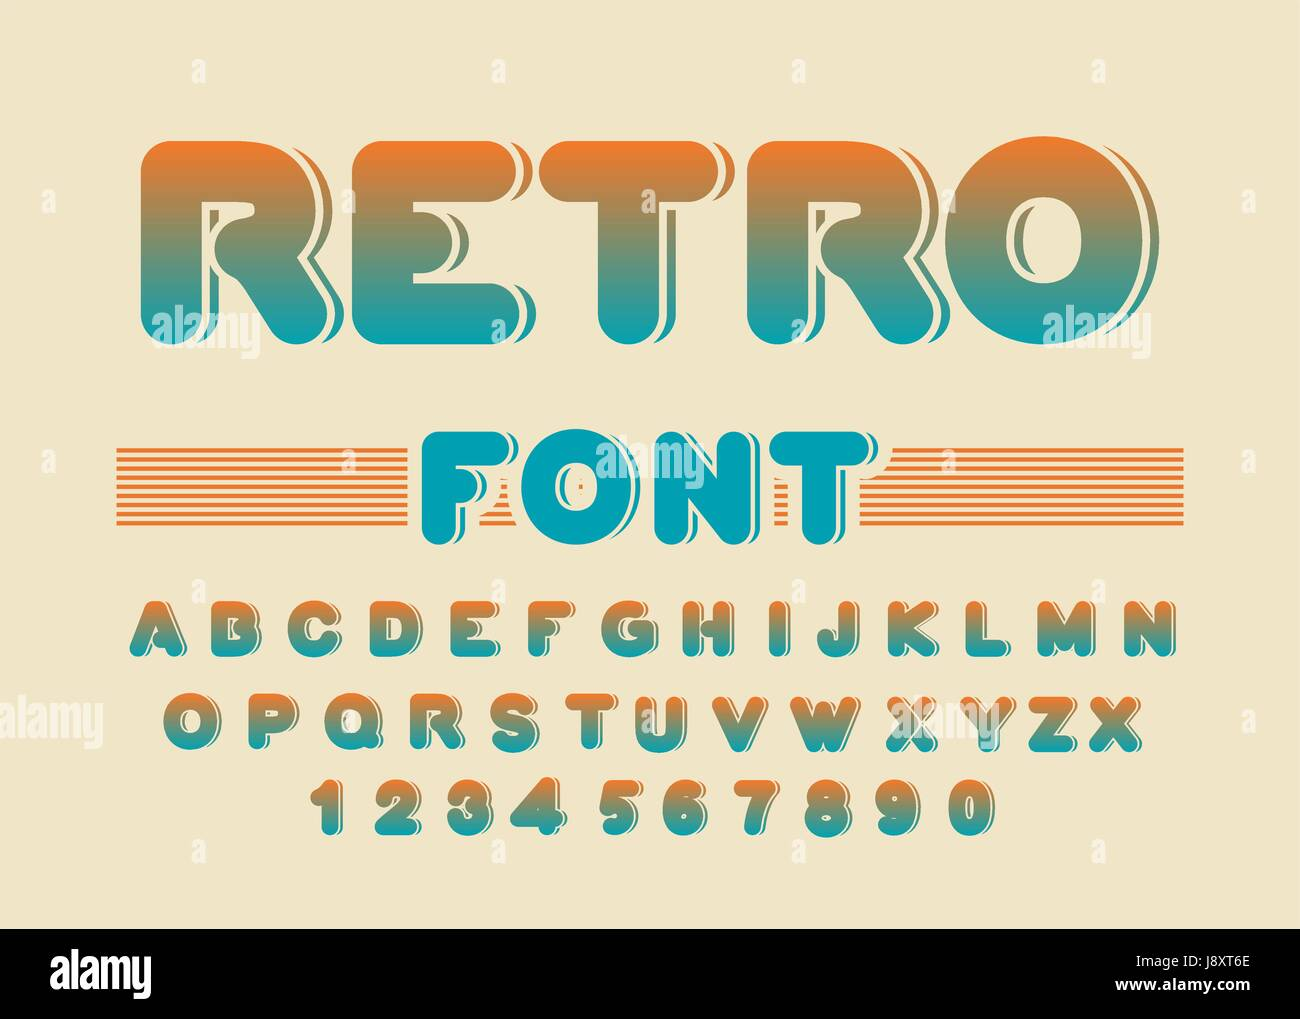 Retro Font Vintage Rounded Alphabet Disco Letters From 80s Hipster Lettring Old Typography